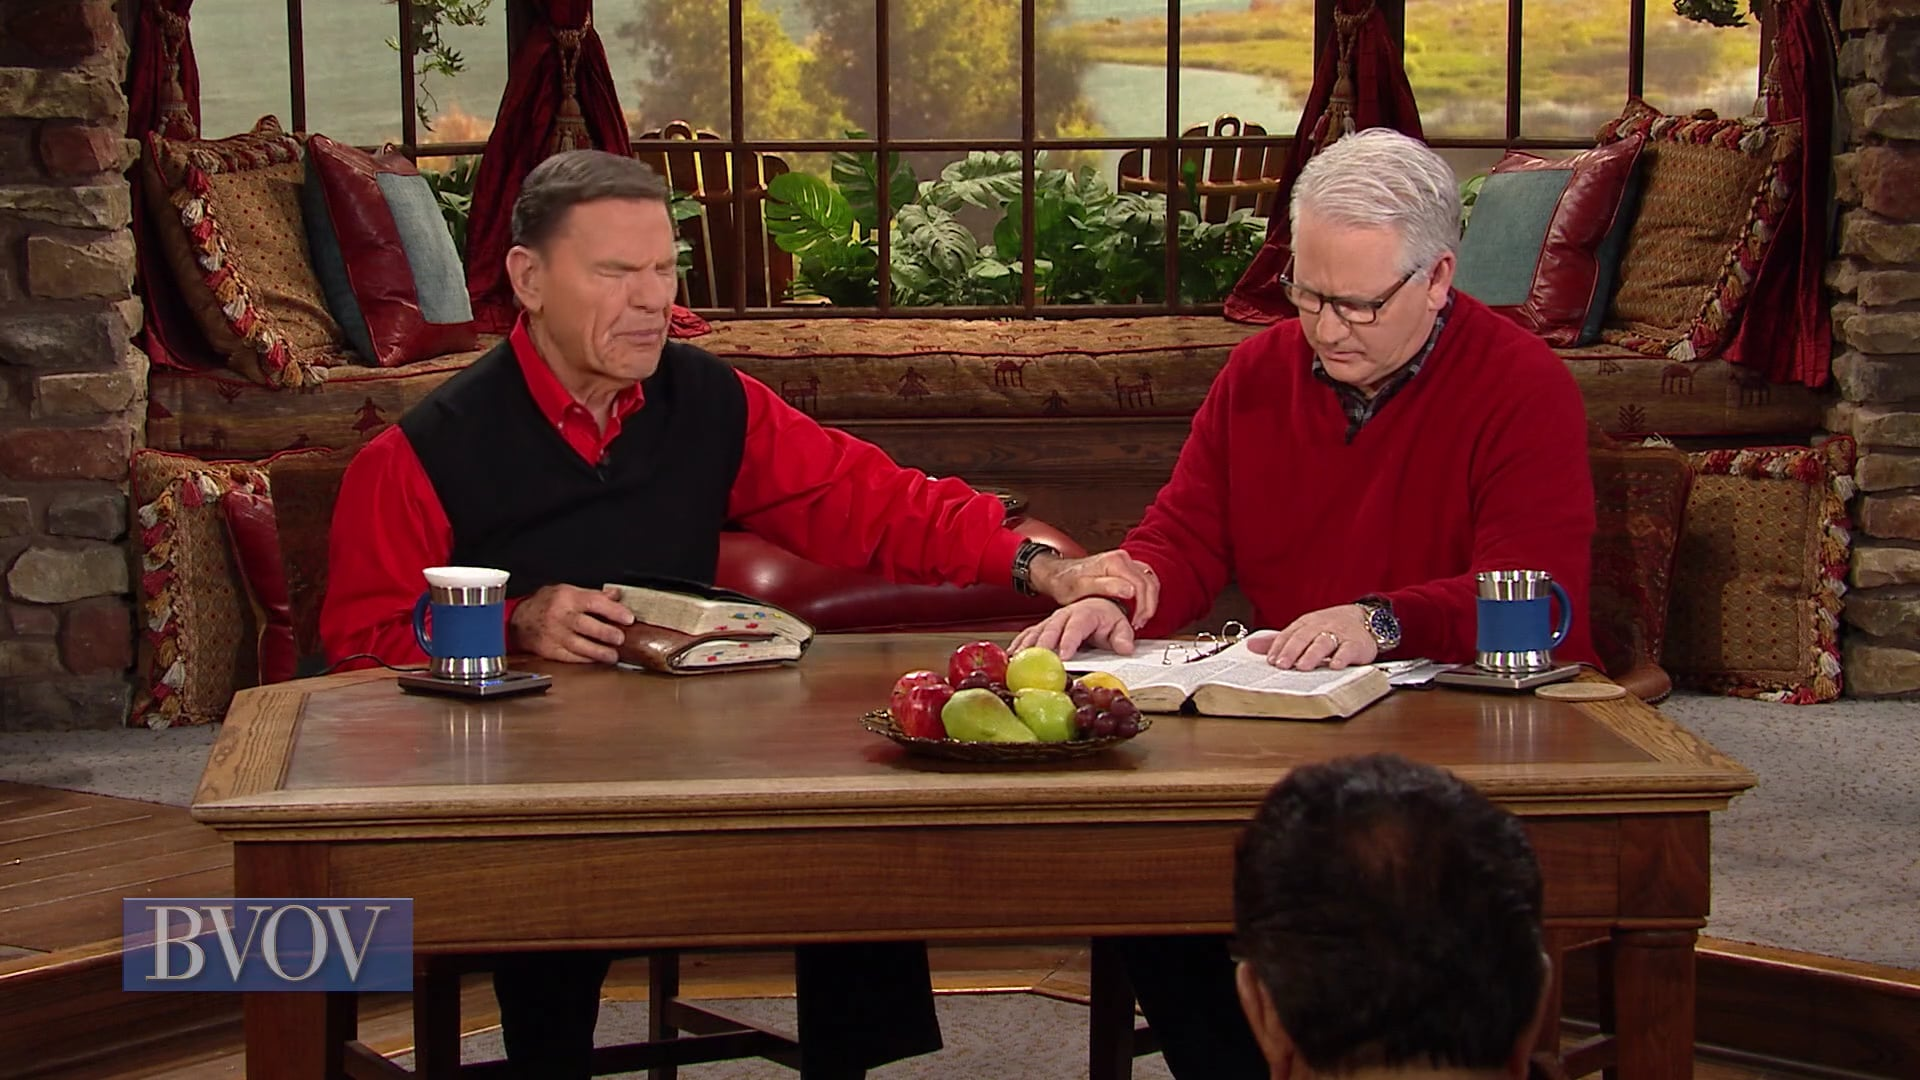 Your covenant will meet all your needs! Watch Believer's Voice of Victory as Kenneth Copeland and Professor Greg Stephens share why man trying to meet his own needs without God causes every kind of trouble. That's what the Babylonian system was then, and it's what it is today. But the just, by faith, shall live a good and abundant life!